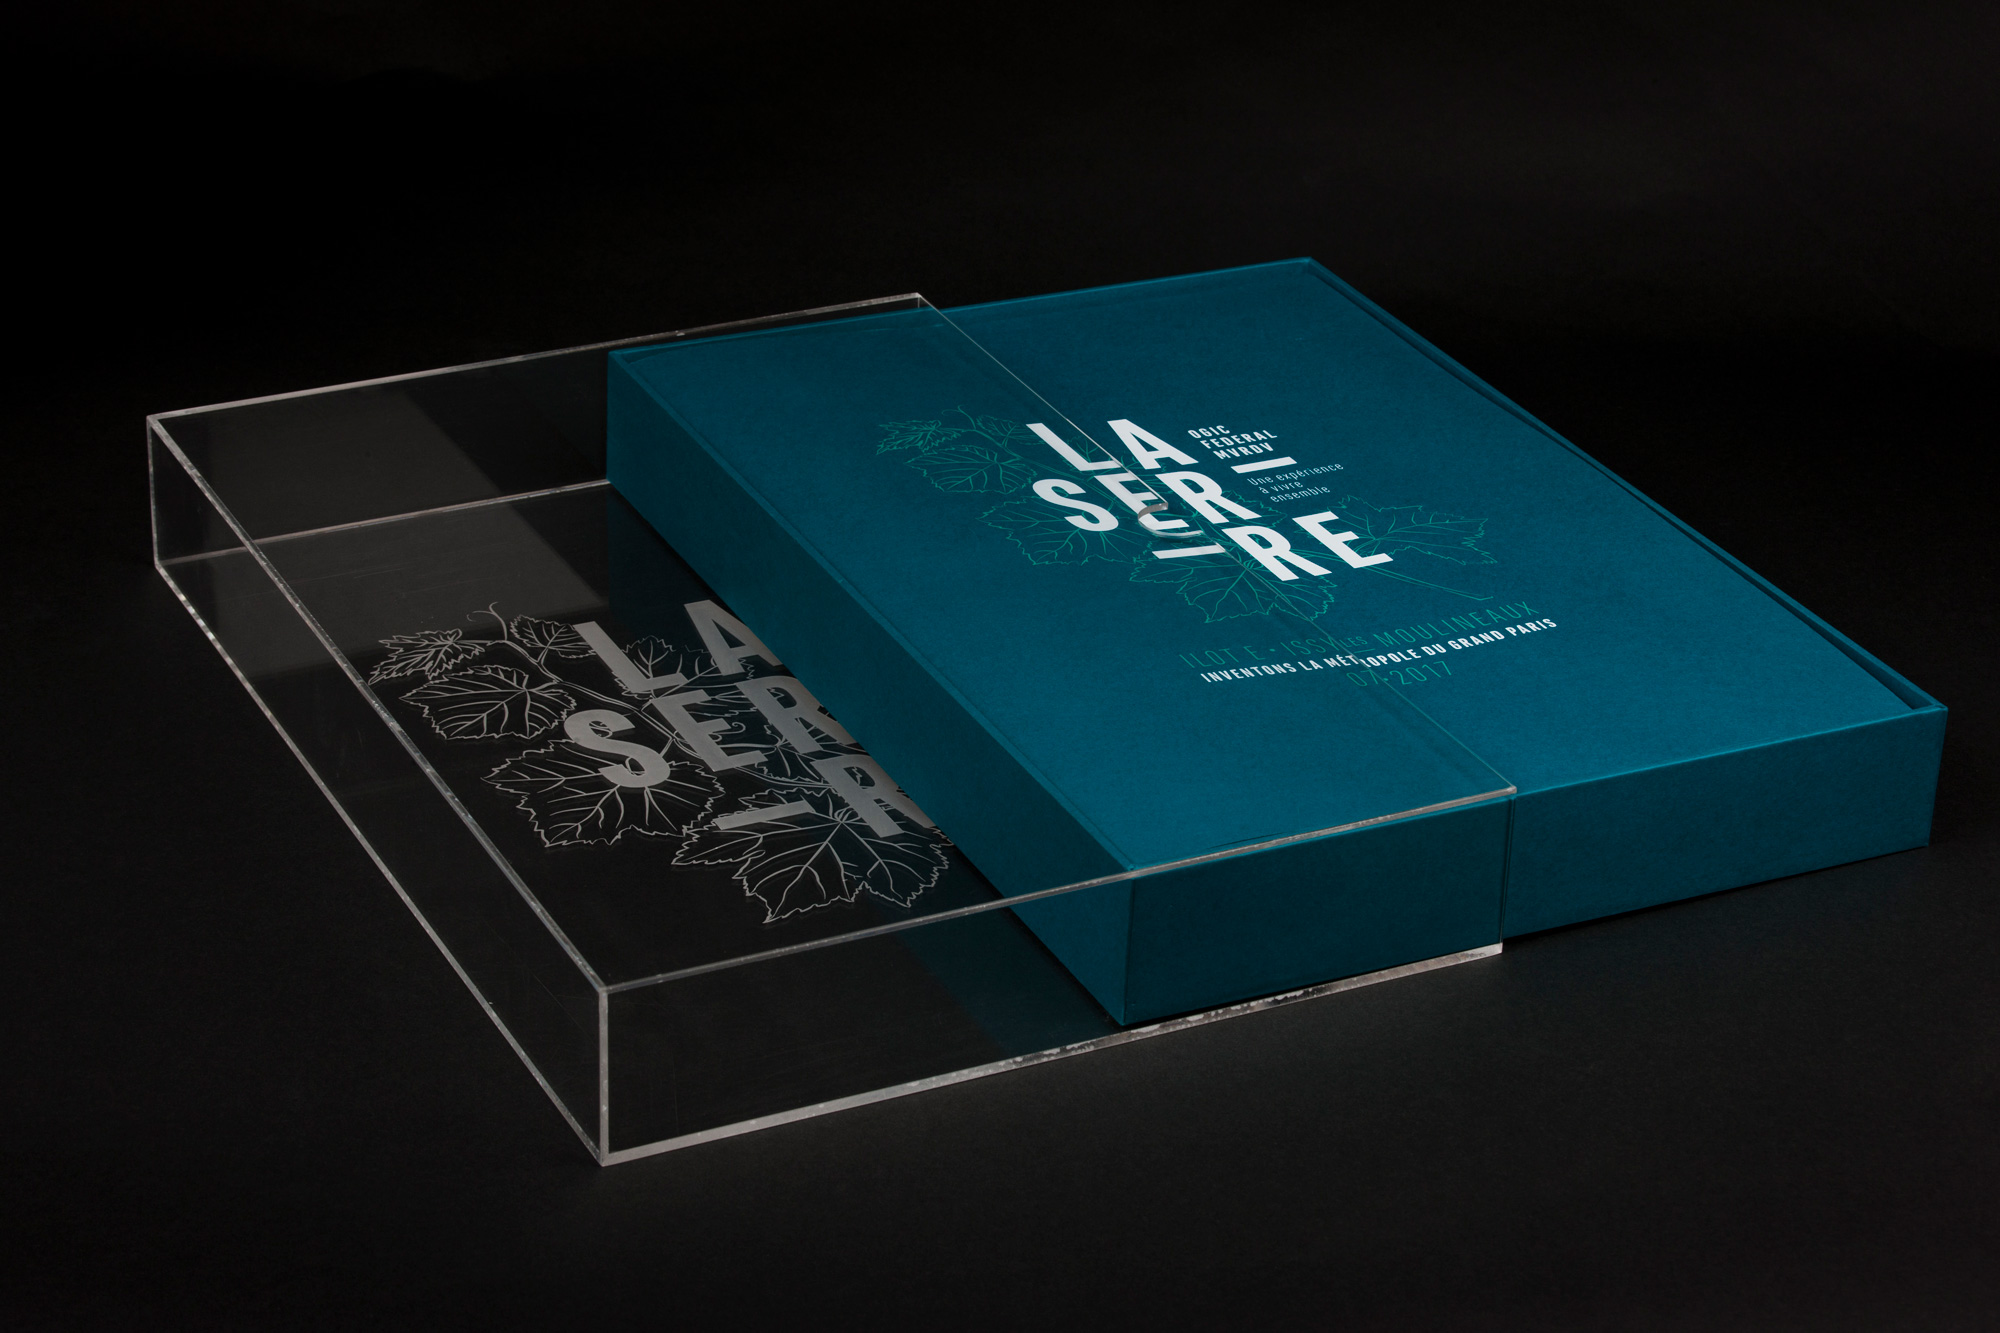 narrative-identite-edition-packaging-projet-ogic-la-serre